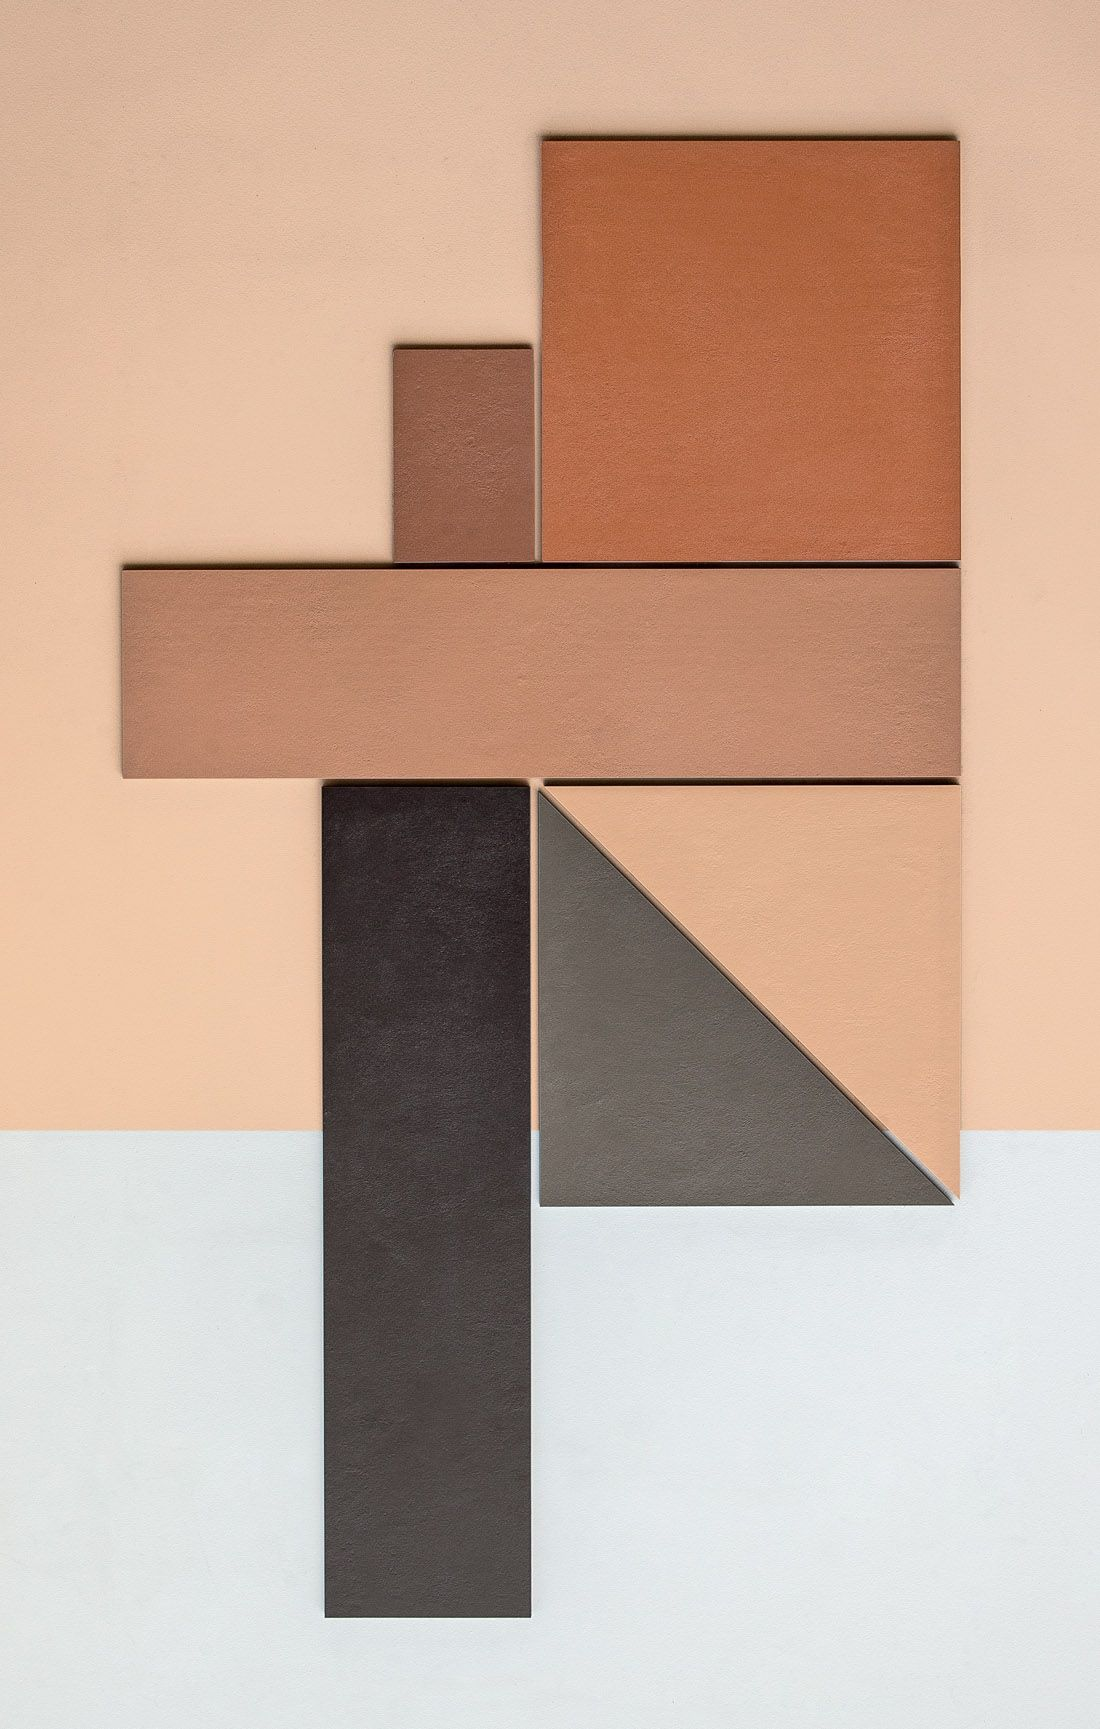 Tierras imperfect and solid patricia urquiola artisan and color inspiration dailygadgetfo Images